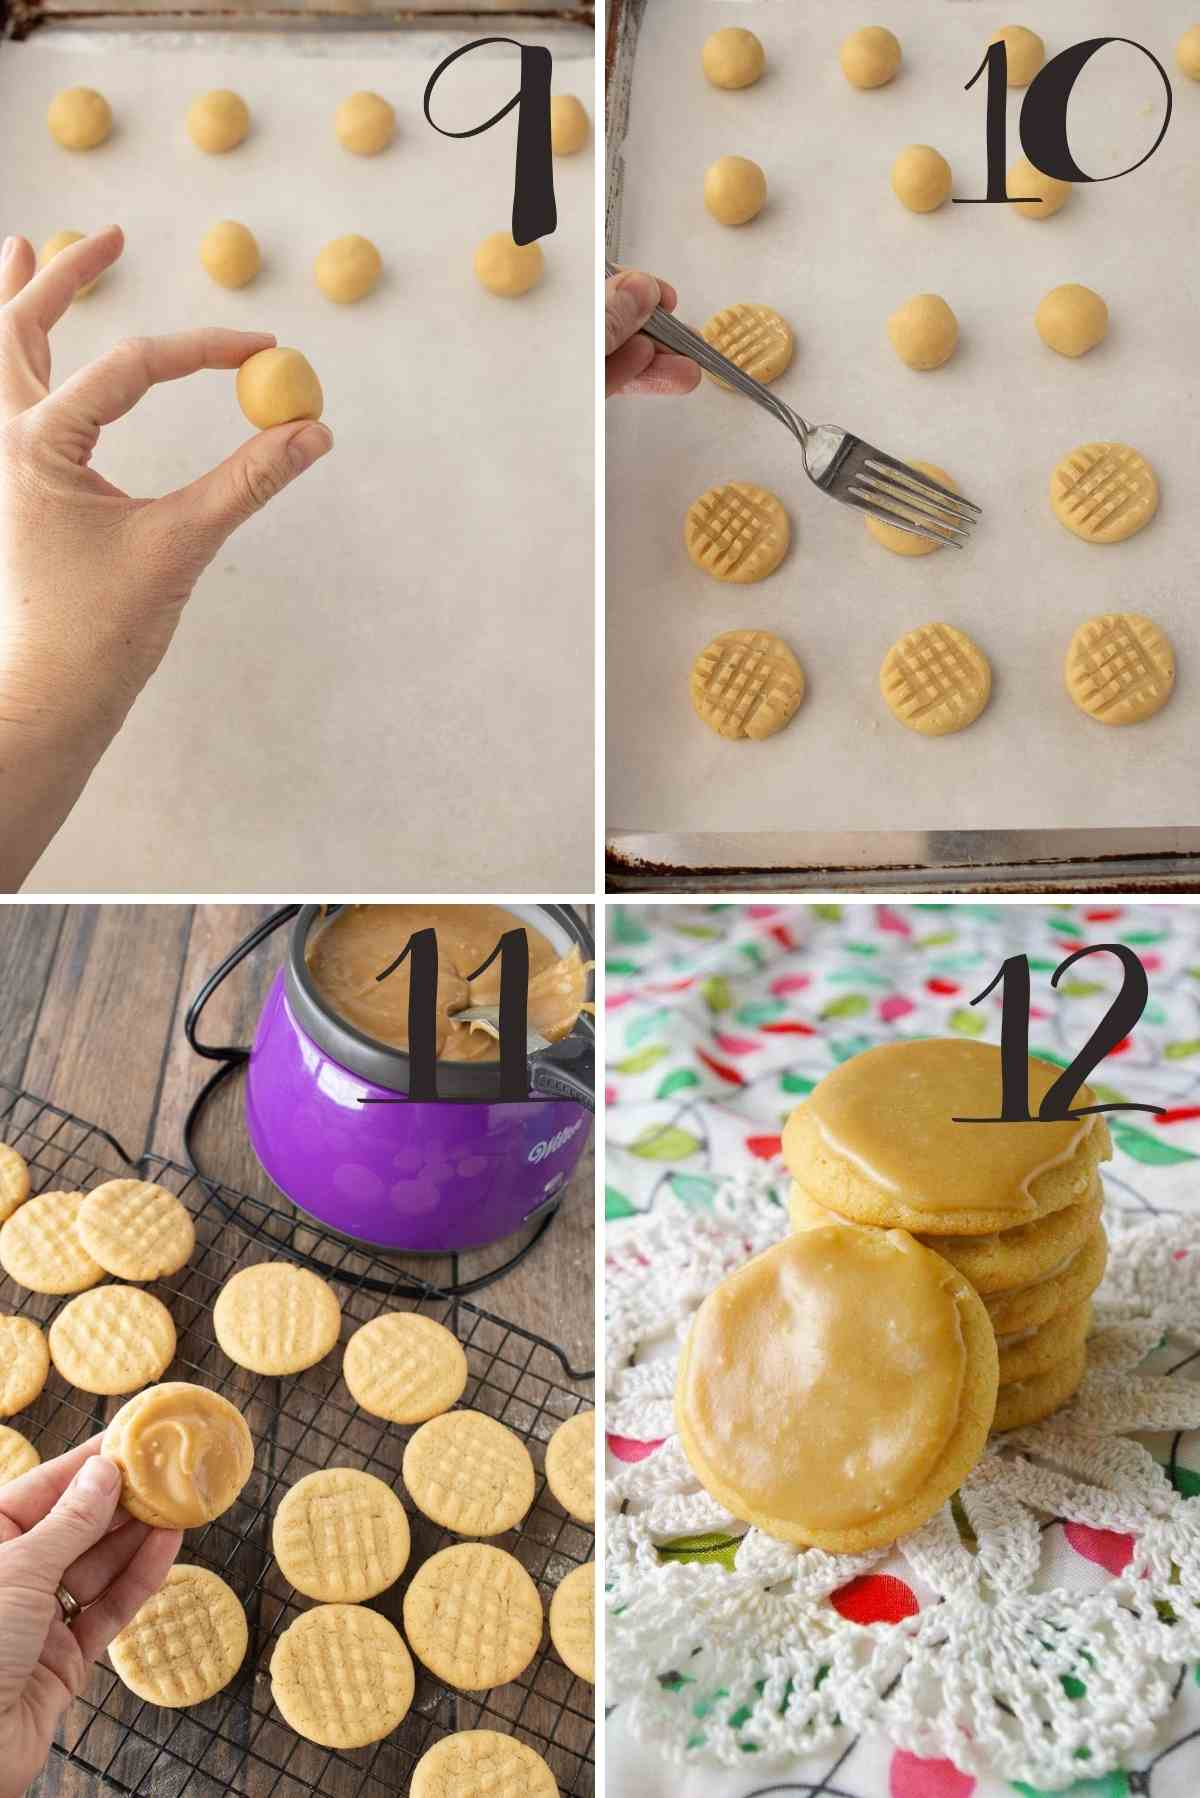 Steps to shape the cookies, bake them and frost them.